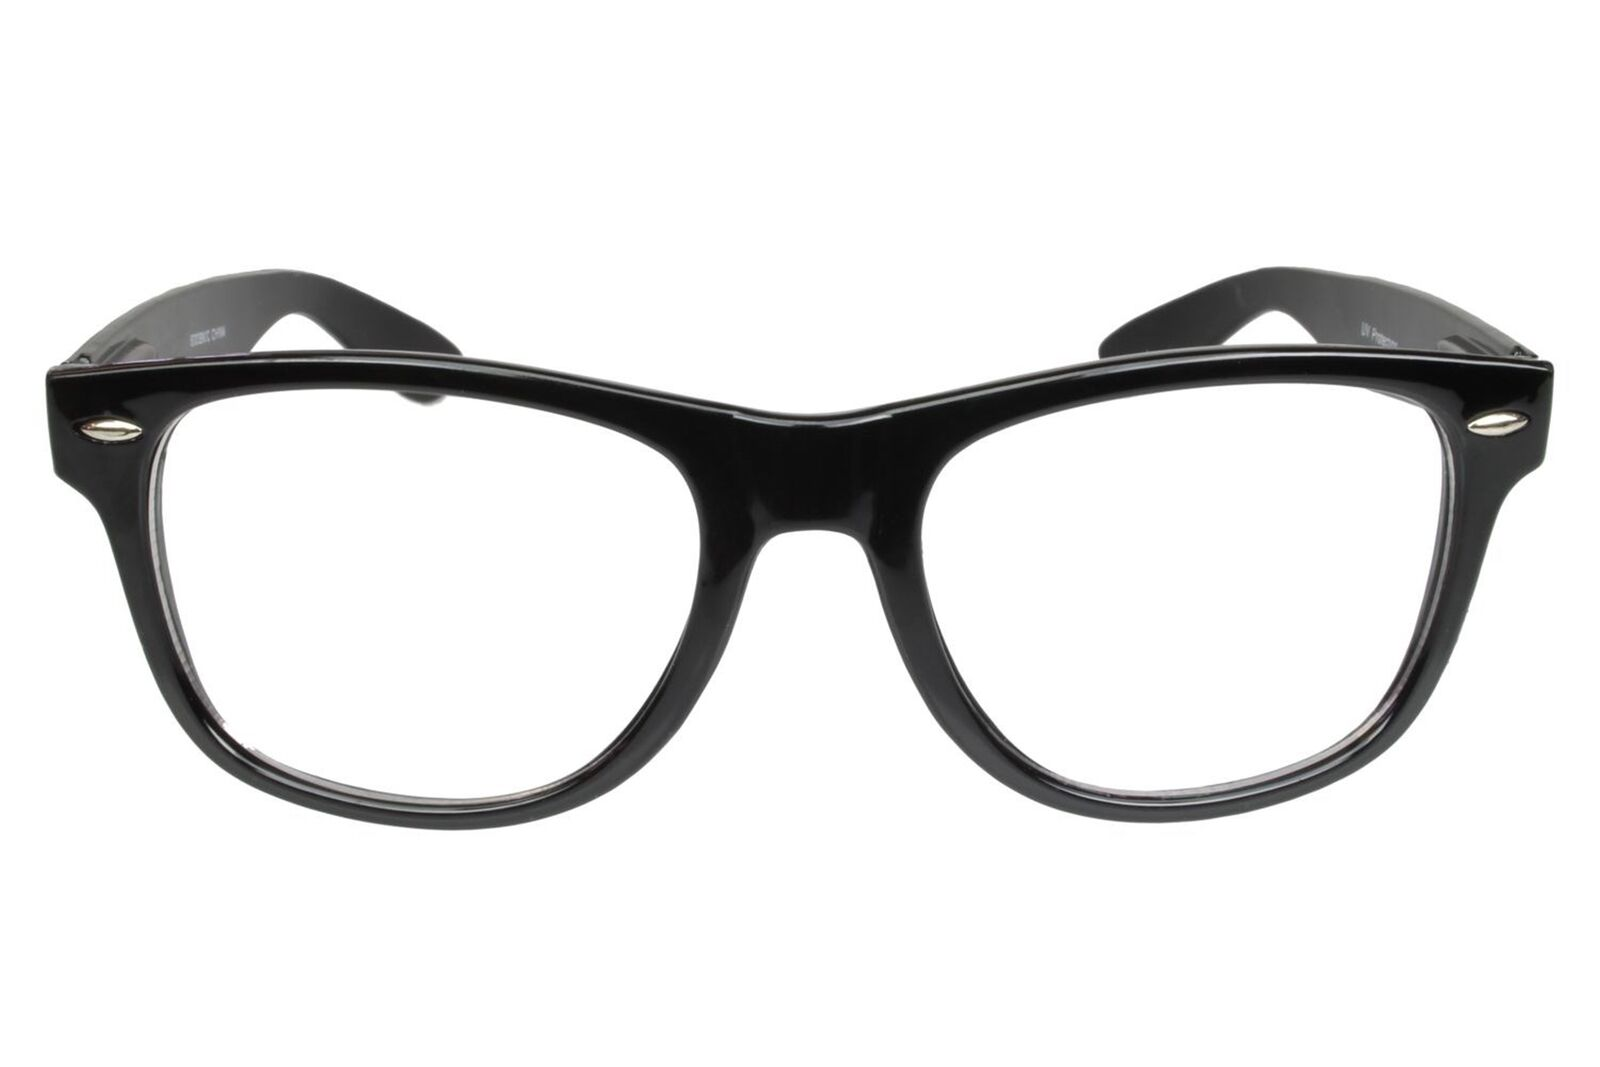 0dc6e15ef40 Fake Glasses Nerd Buddy Holly Classic Thick Black Frame Clear Lens ...